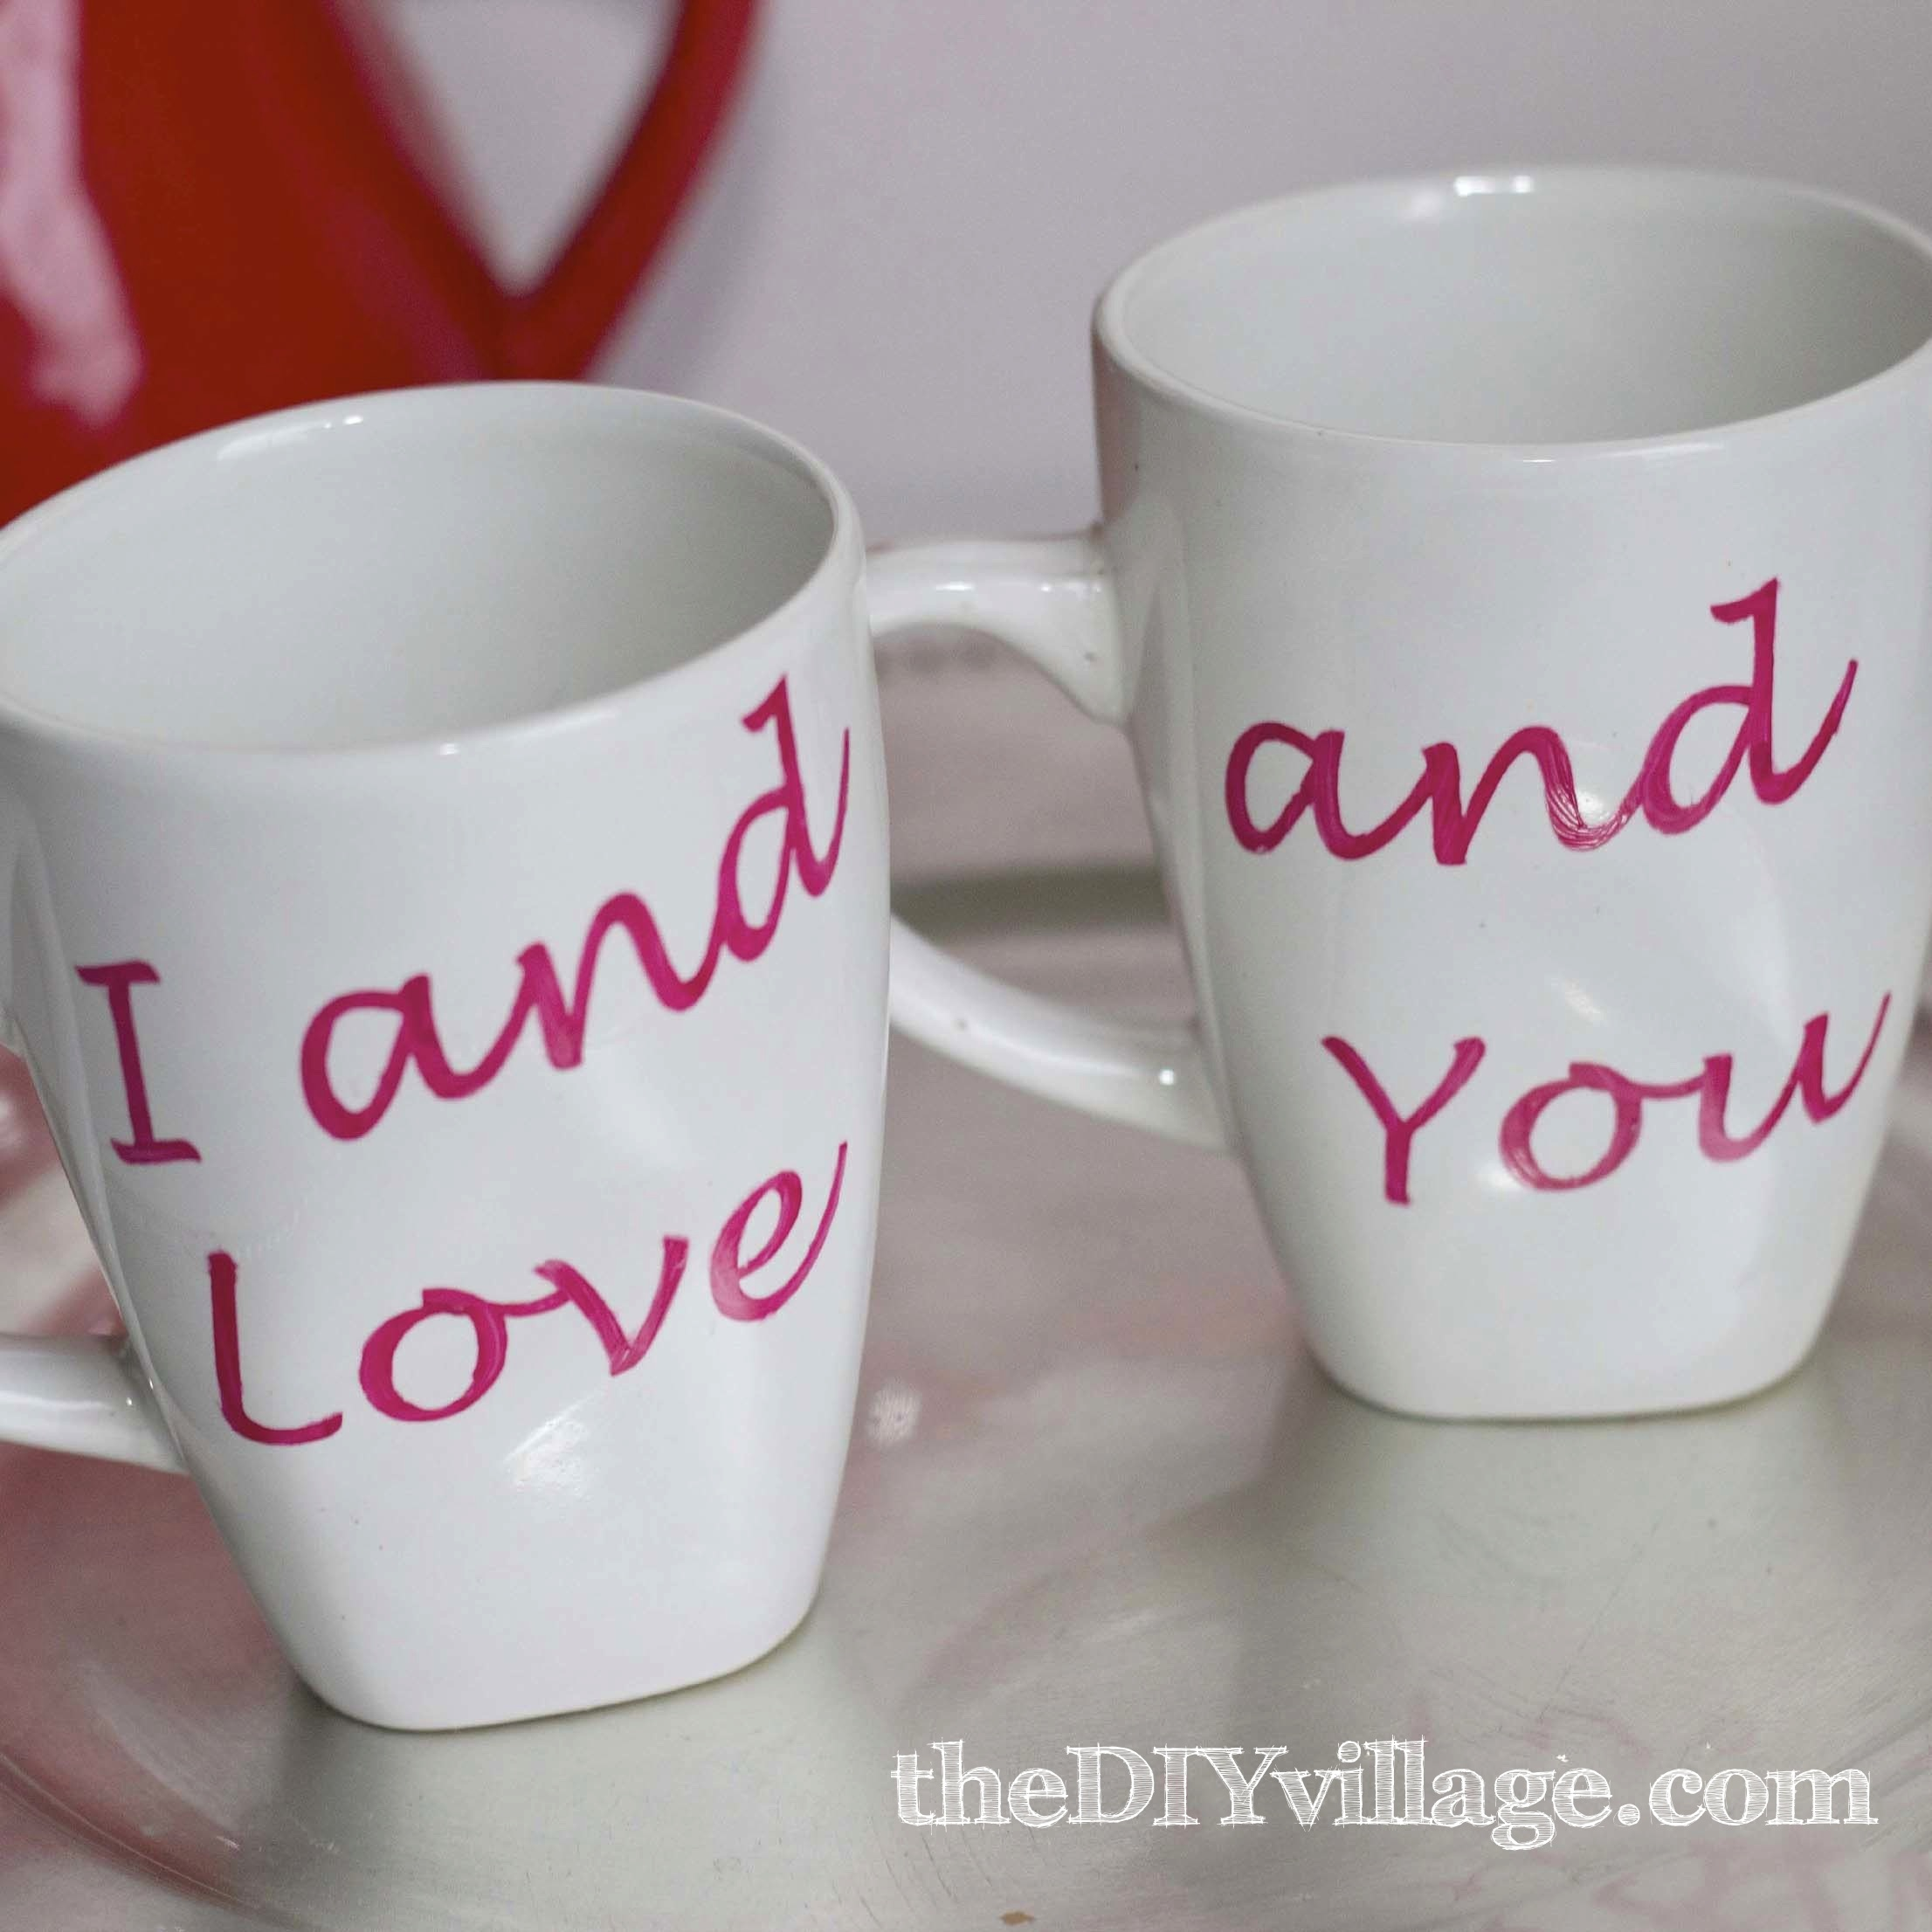 http://www.thediyvillage.com/wp-content/uploads/2013/01/I-and-Love-and-You-Valentine-Coffee-Mugs-theDIYvillage.jpg